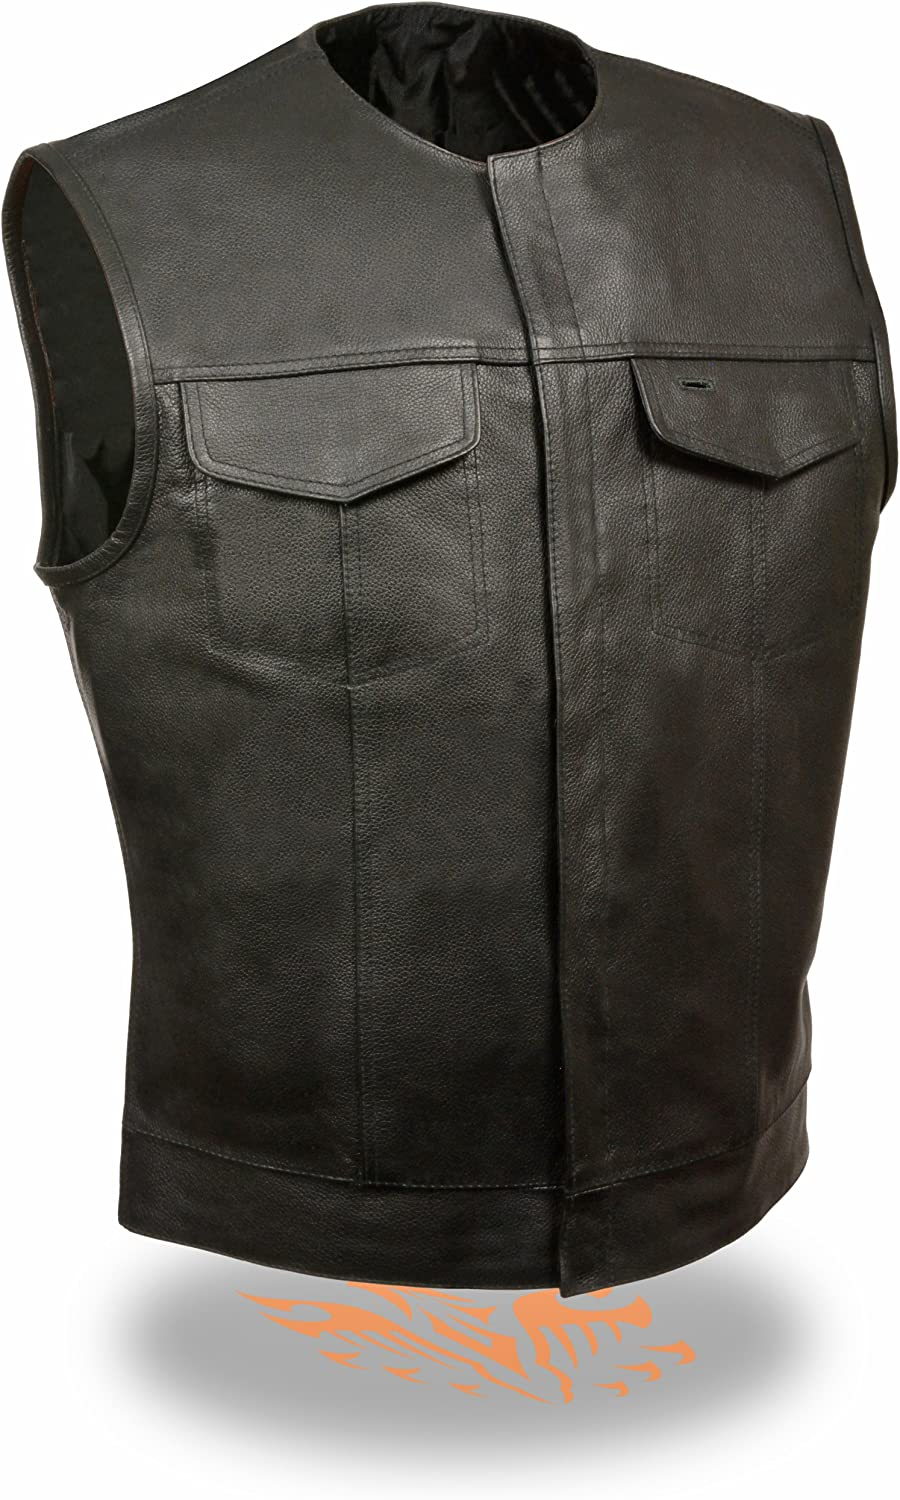 Men's SOA Collarless Leather Vest w/ Inside Gun & Drop Pocket Perfect for Club Colors & Patches (Large)